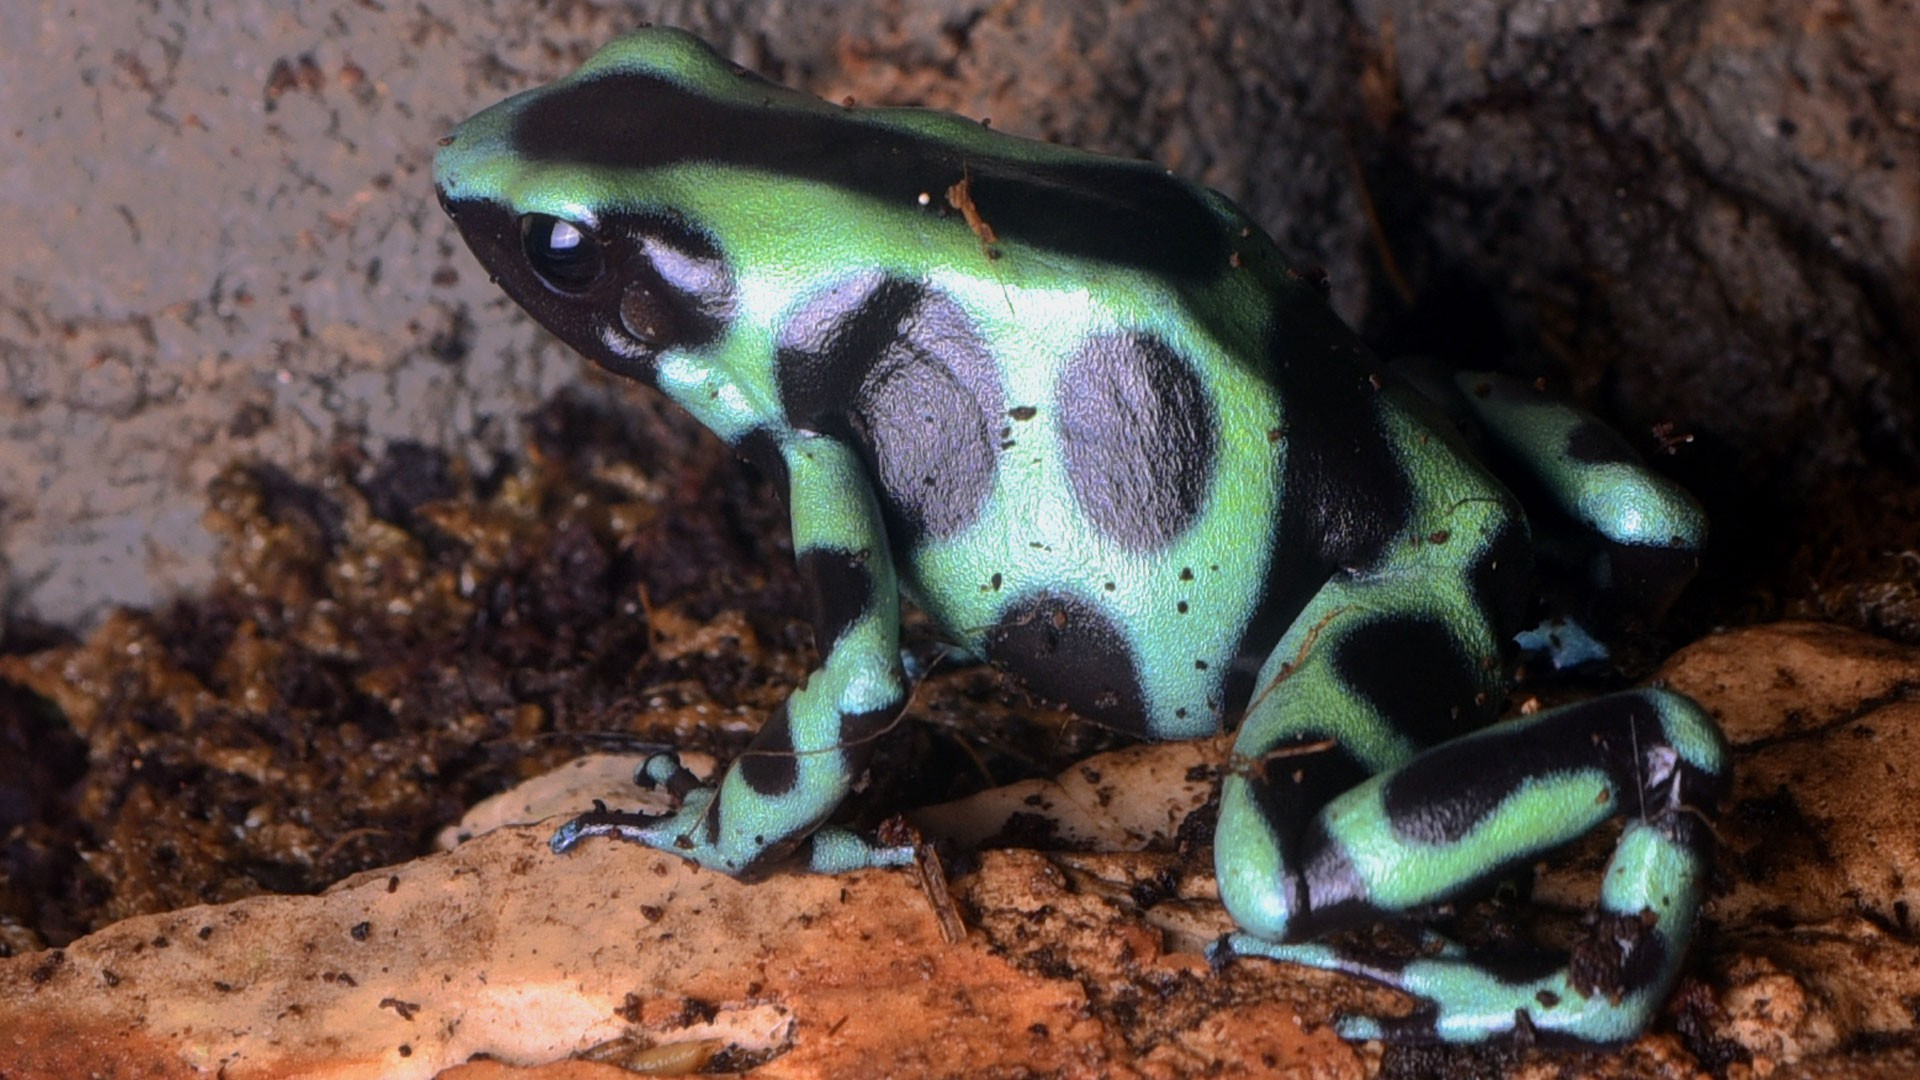 Green-and-Black Poison Dart Frog